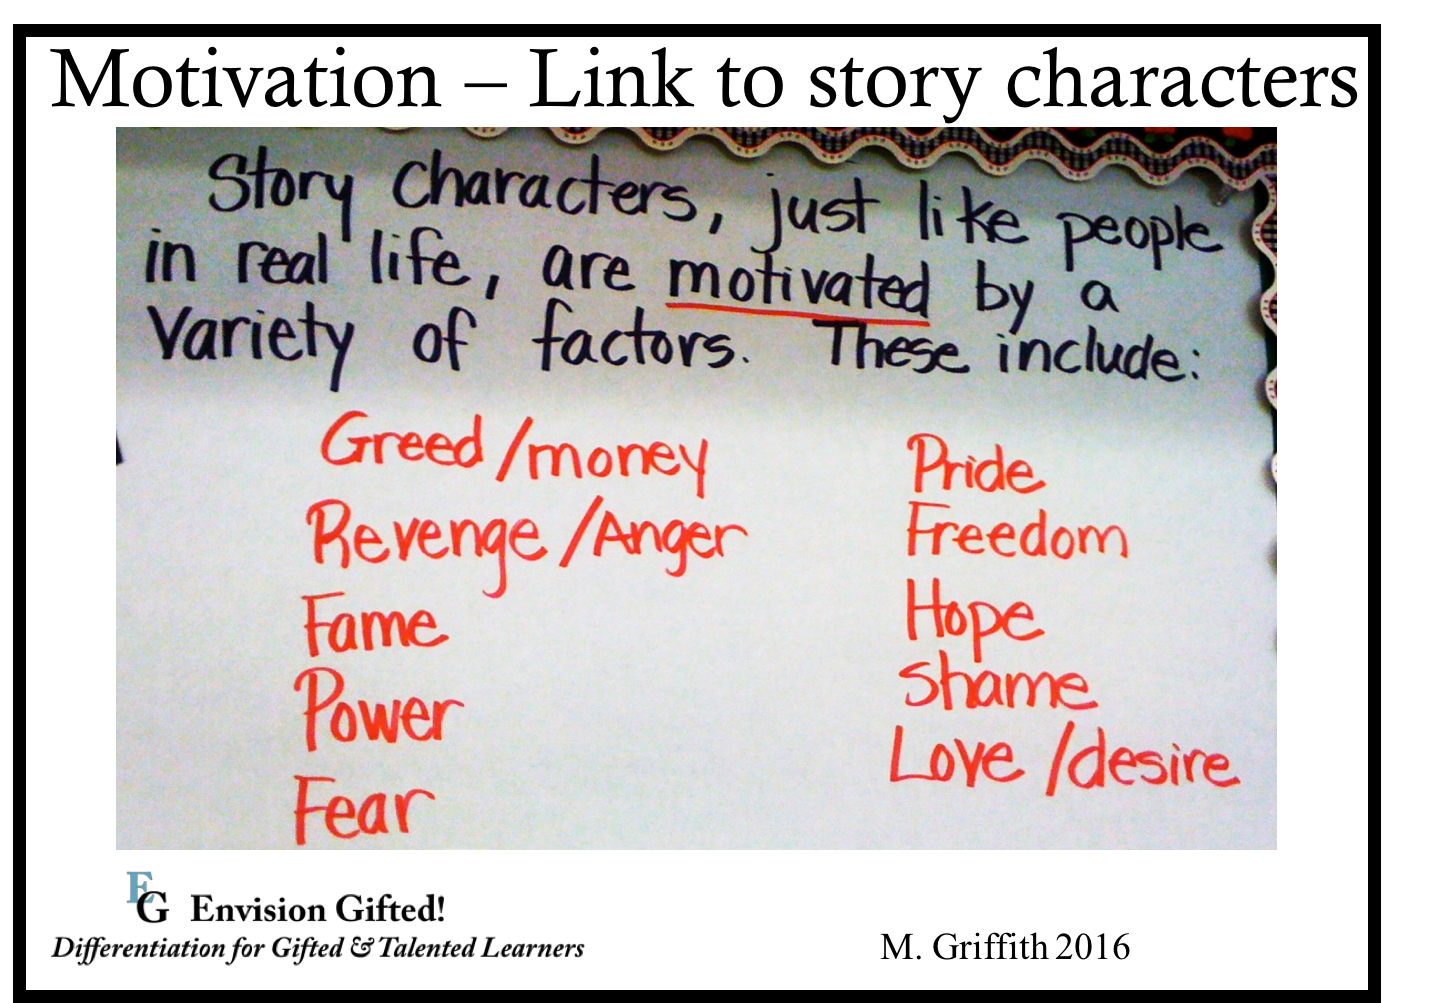 Envision Gifted. Motivation- Link to story characters